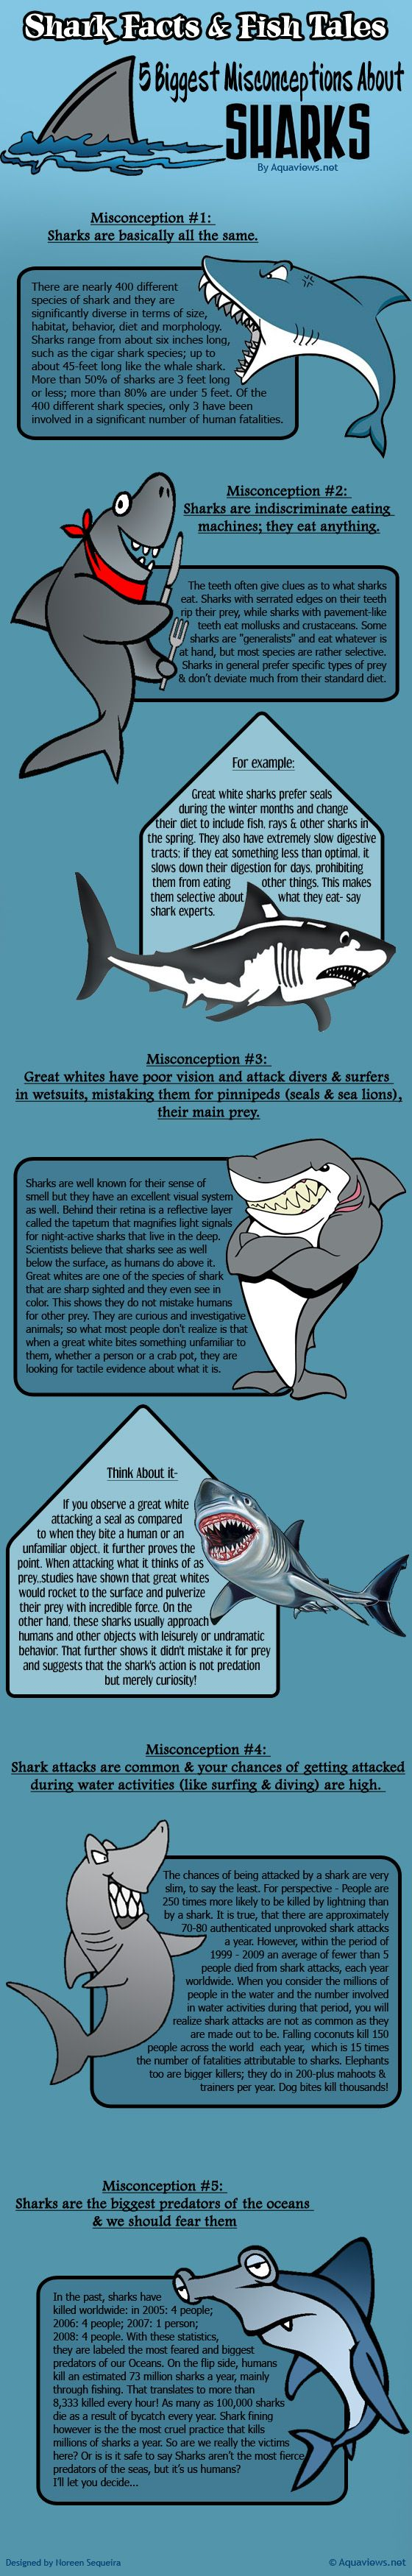 Shark Facts And Fish Tales: 5 Biggest Misconceptions About Sharks